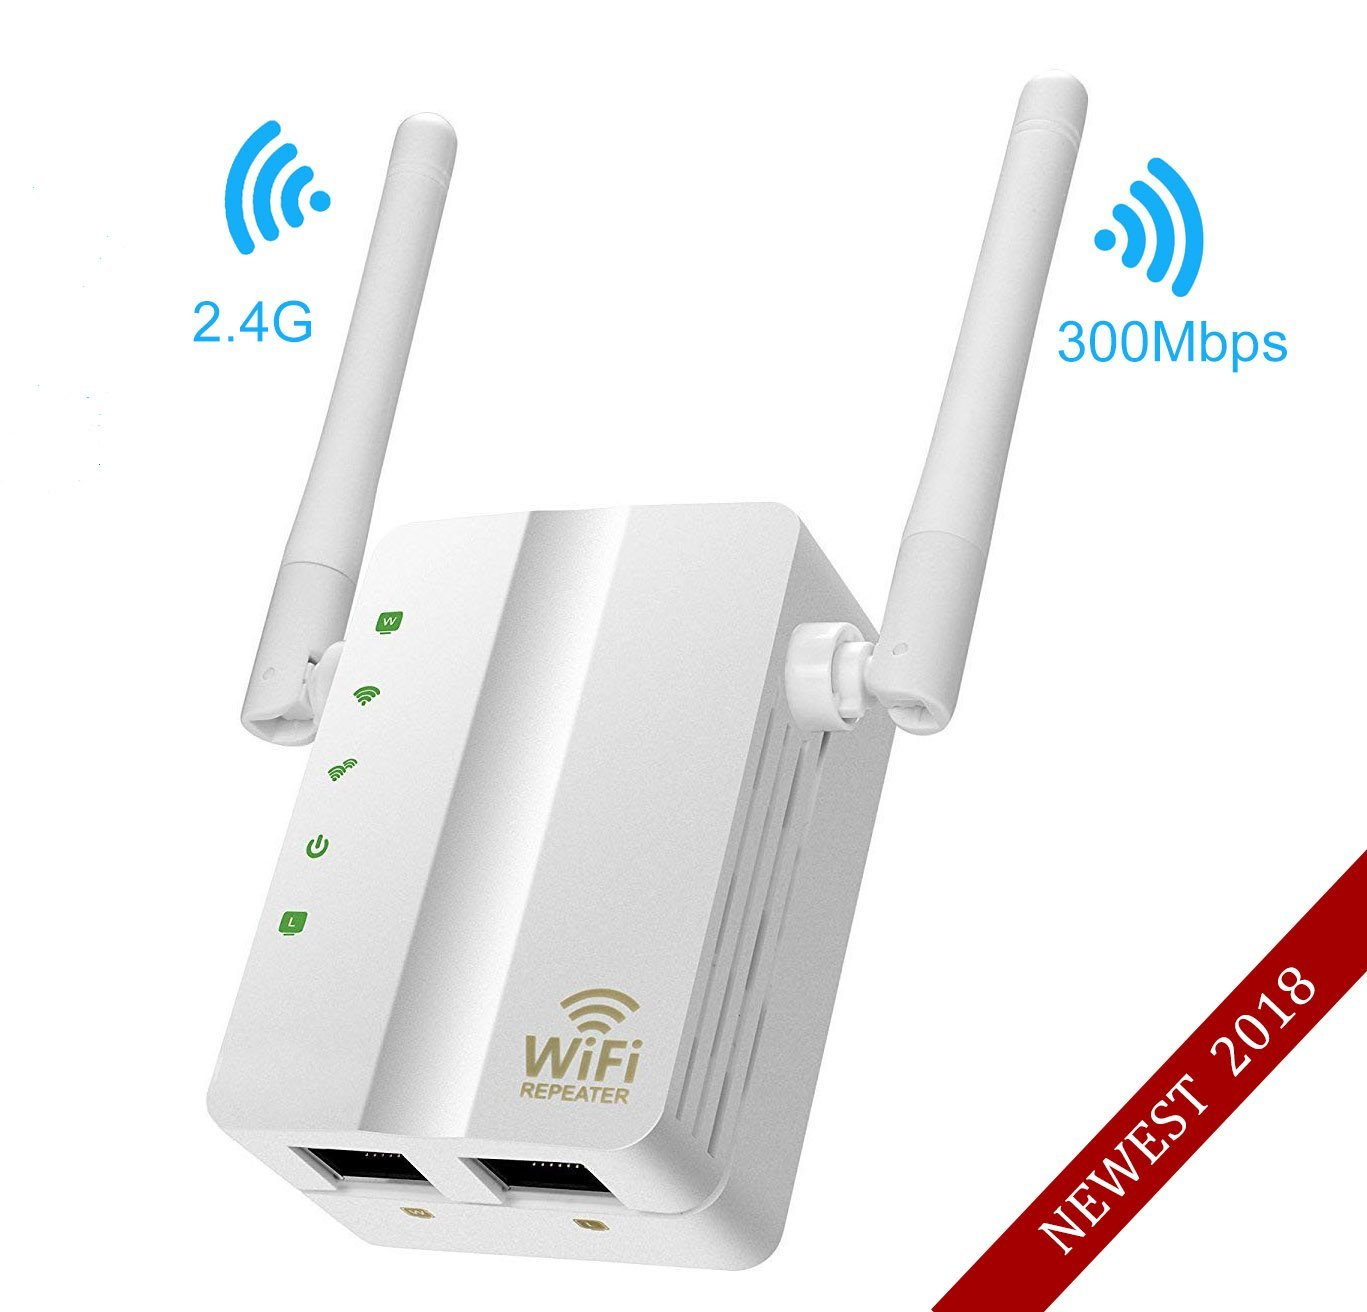 (2018 NEWEST) Wifi Repeater,MSDADA 300Mbps Fast Speed WiFi Extender,2.4GHz Supports Router/Repeater/AP Mode,Internet Signal Booster Extending WiFi to Smart Home & Alexa Devices(White)